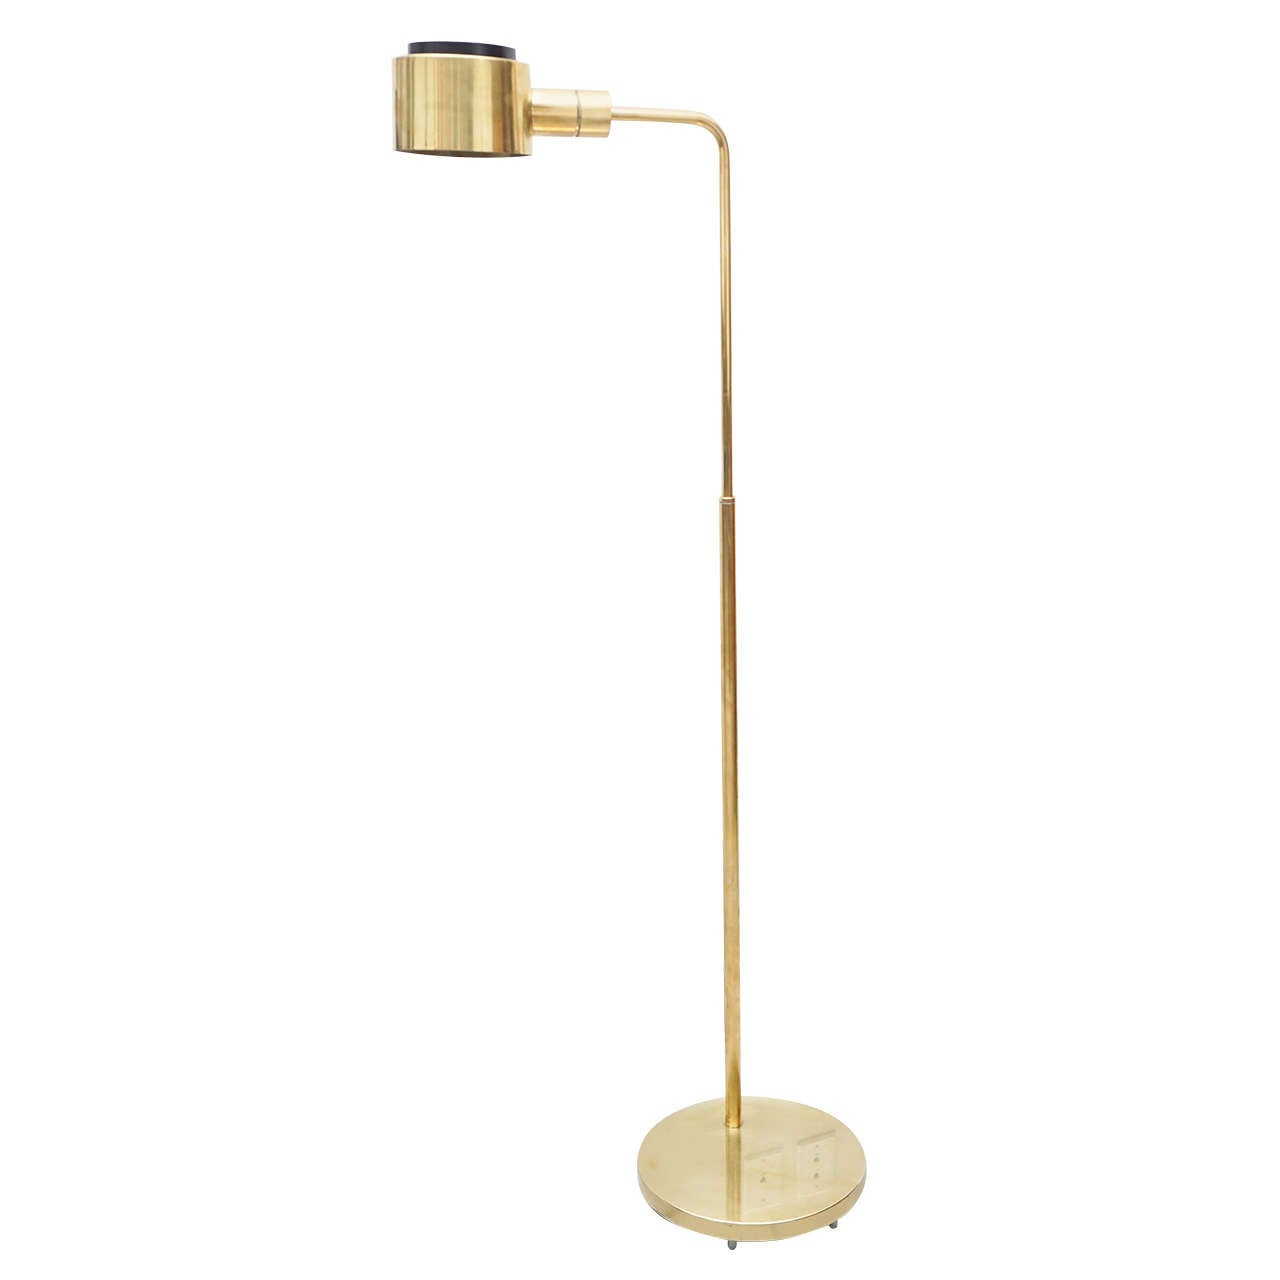 1970s casella brass floor lamp at 1stdibs for 1970s floor lamps